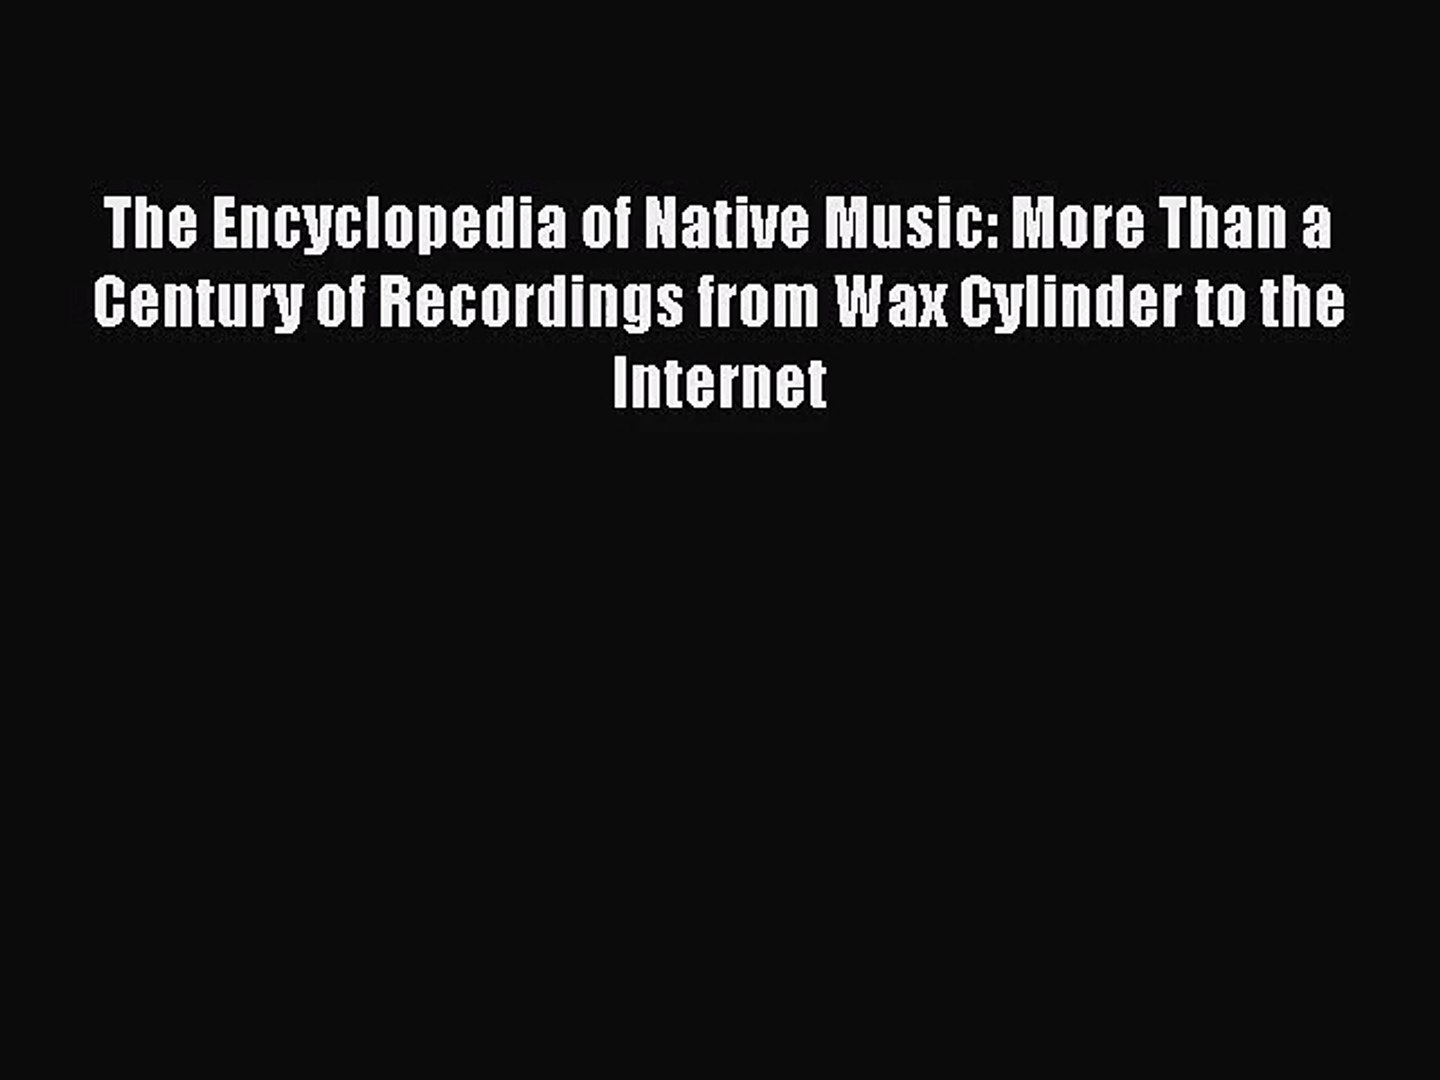 More Than a Century of Recordings from Wax Cylinder to the Internet The Encyclopedia of Native Music